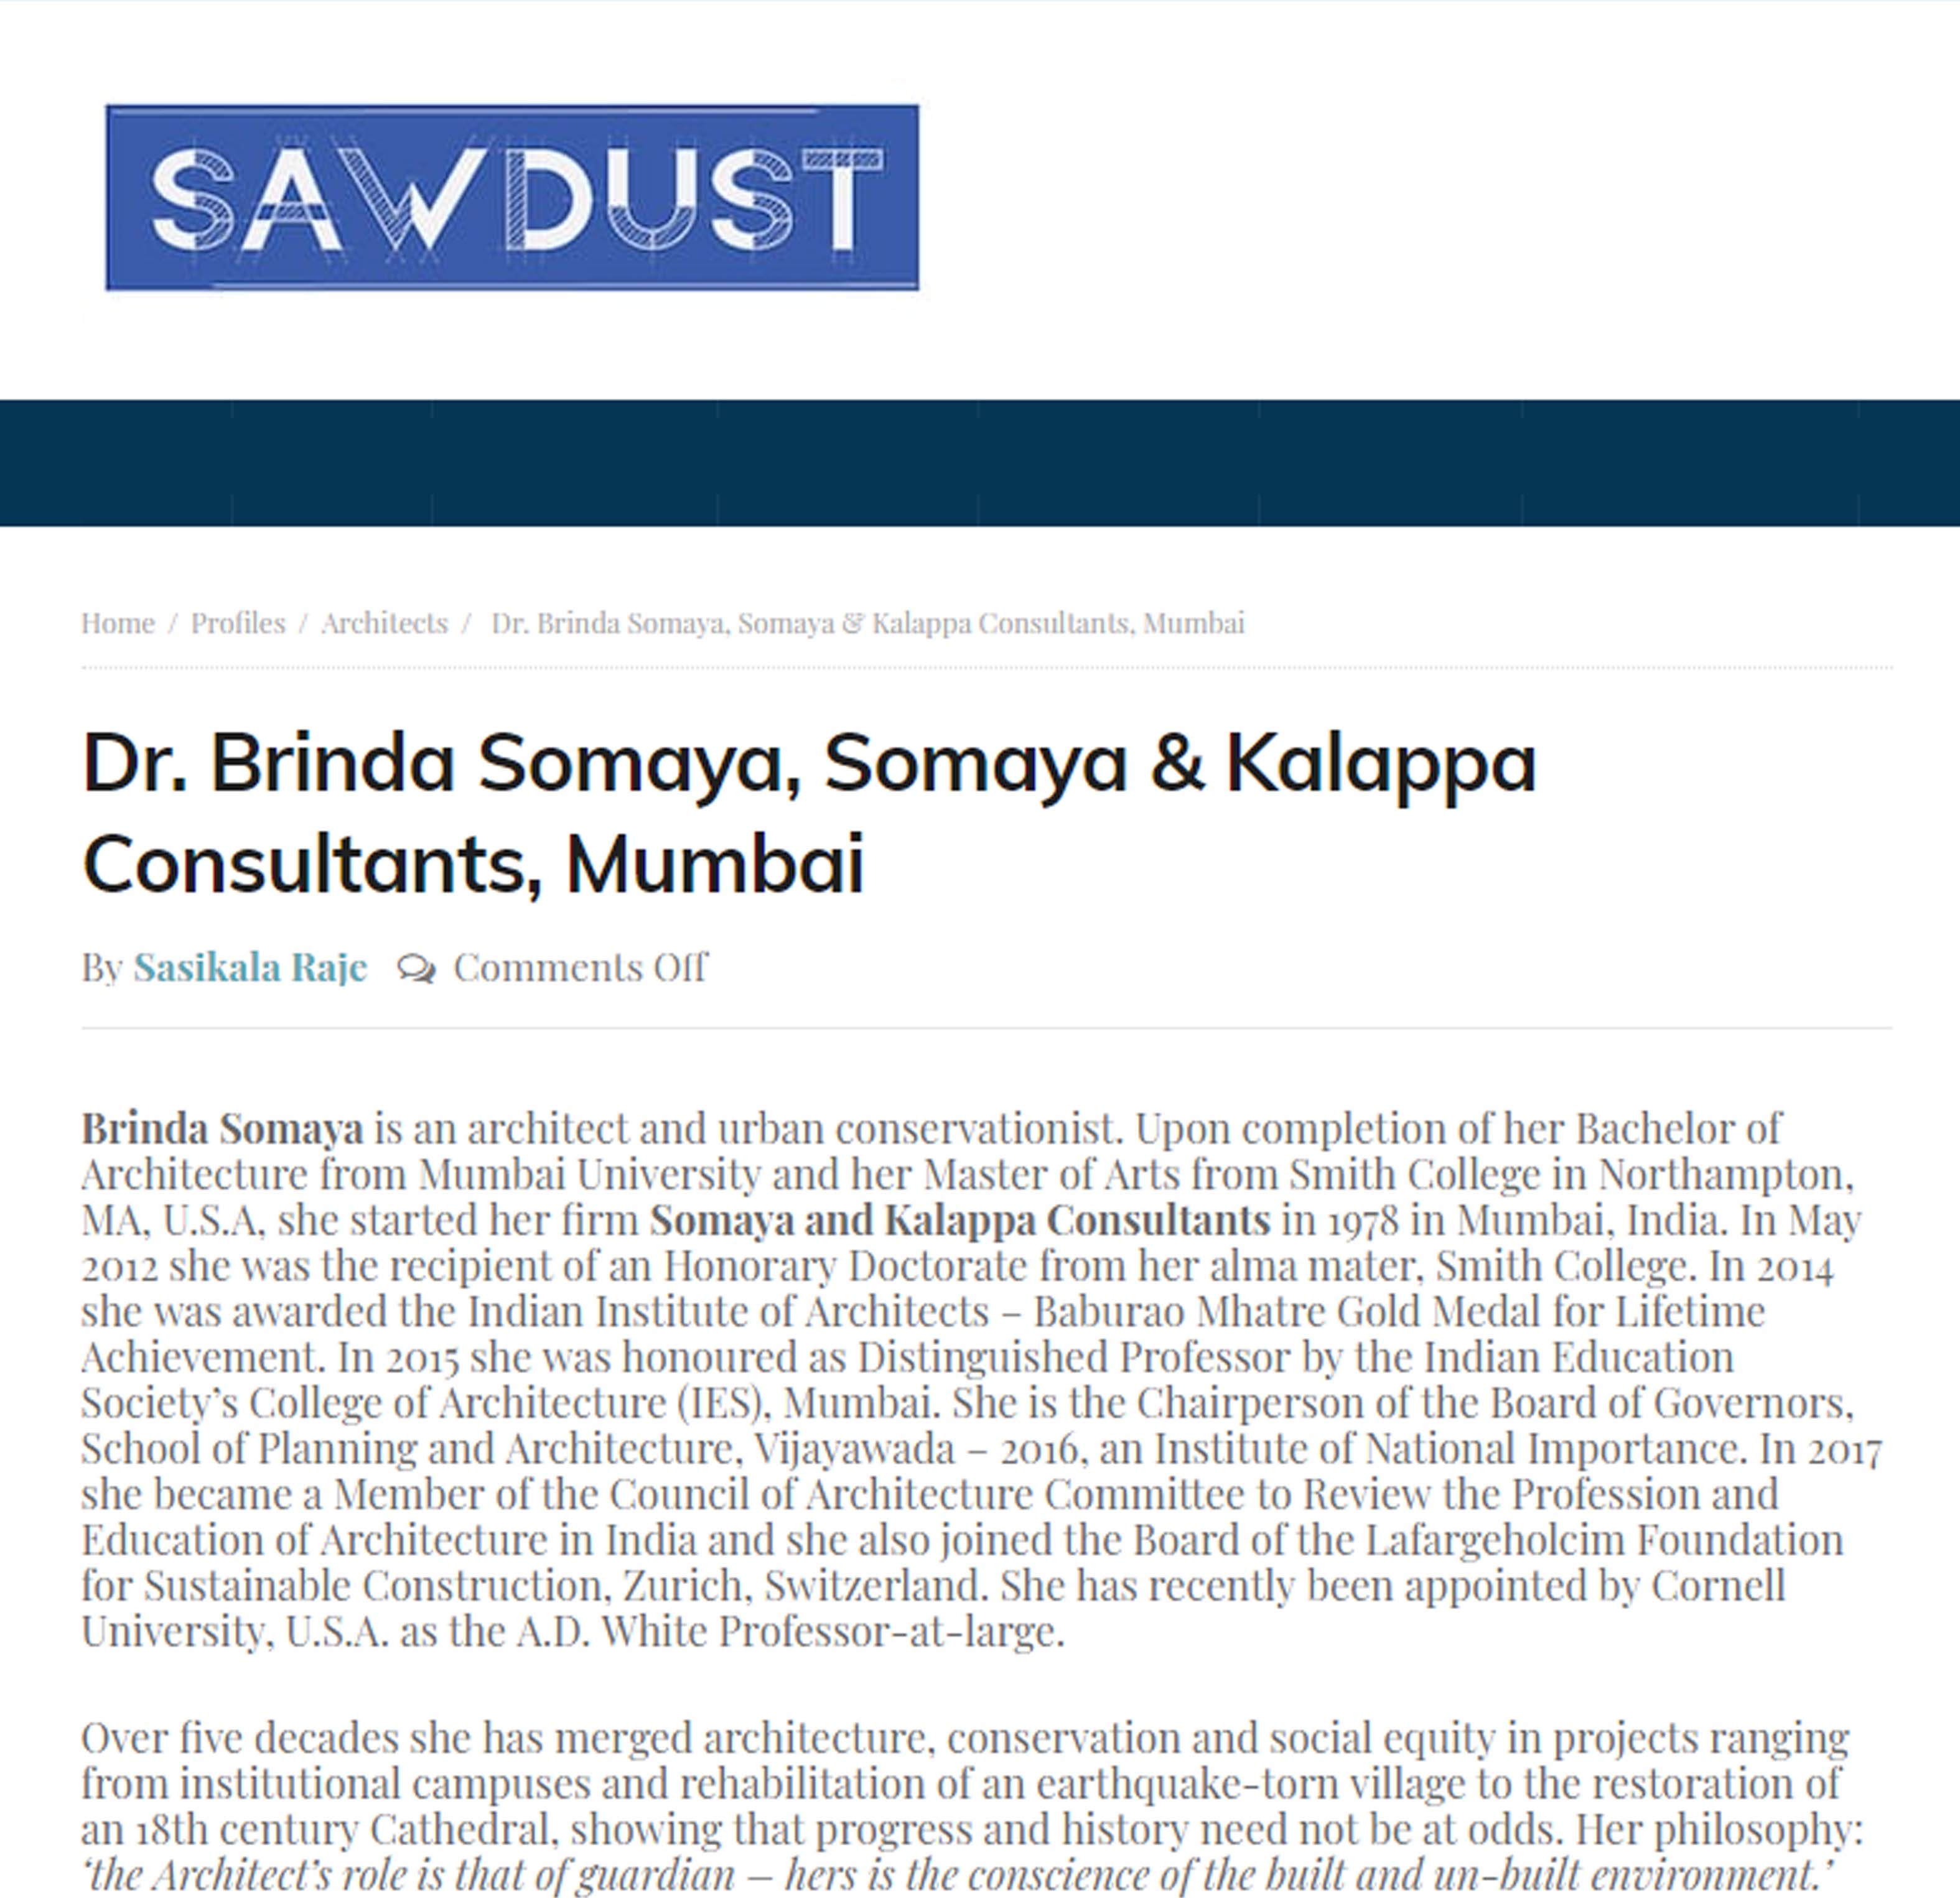 Dr. Brinda Somaya, Somaya & Kalappa Consultants, Mumbai , Sawdust - On 1 October 2018